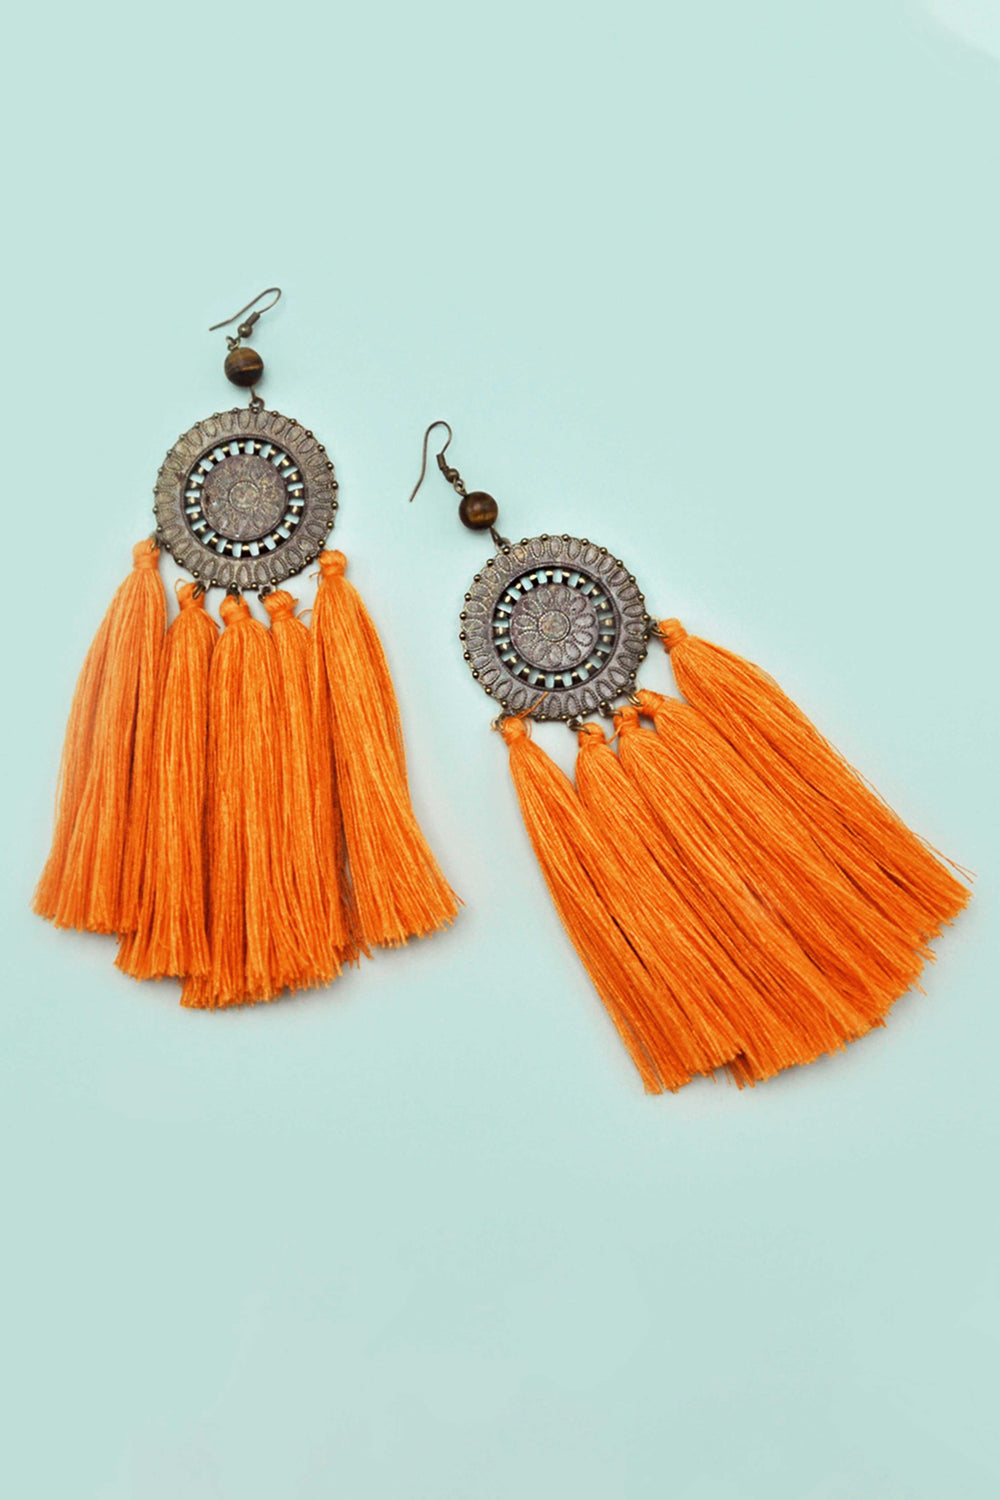 ZETA EARRINGS | Women's Online Shopping | CHICLEFRIQUE